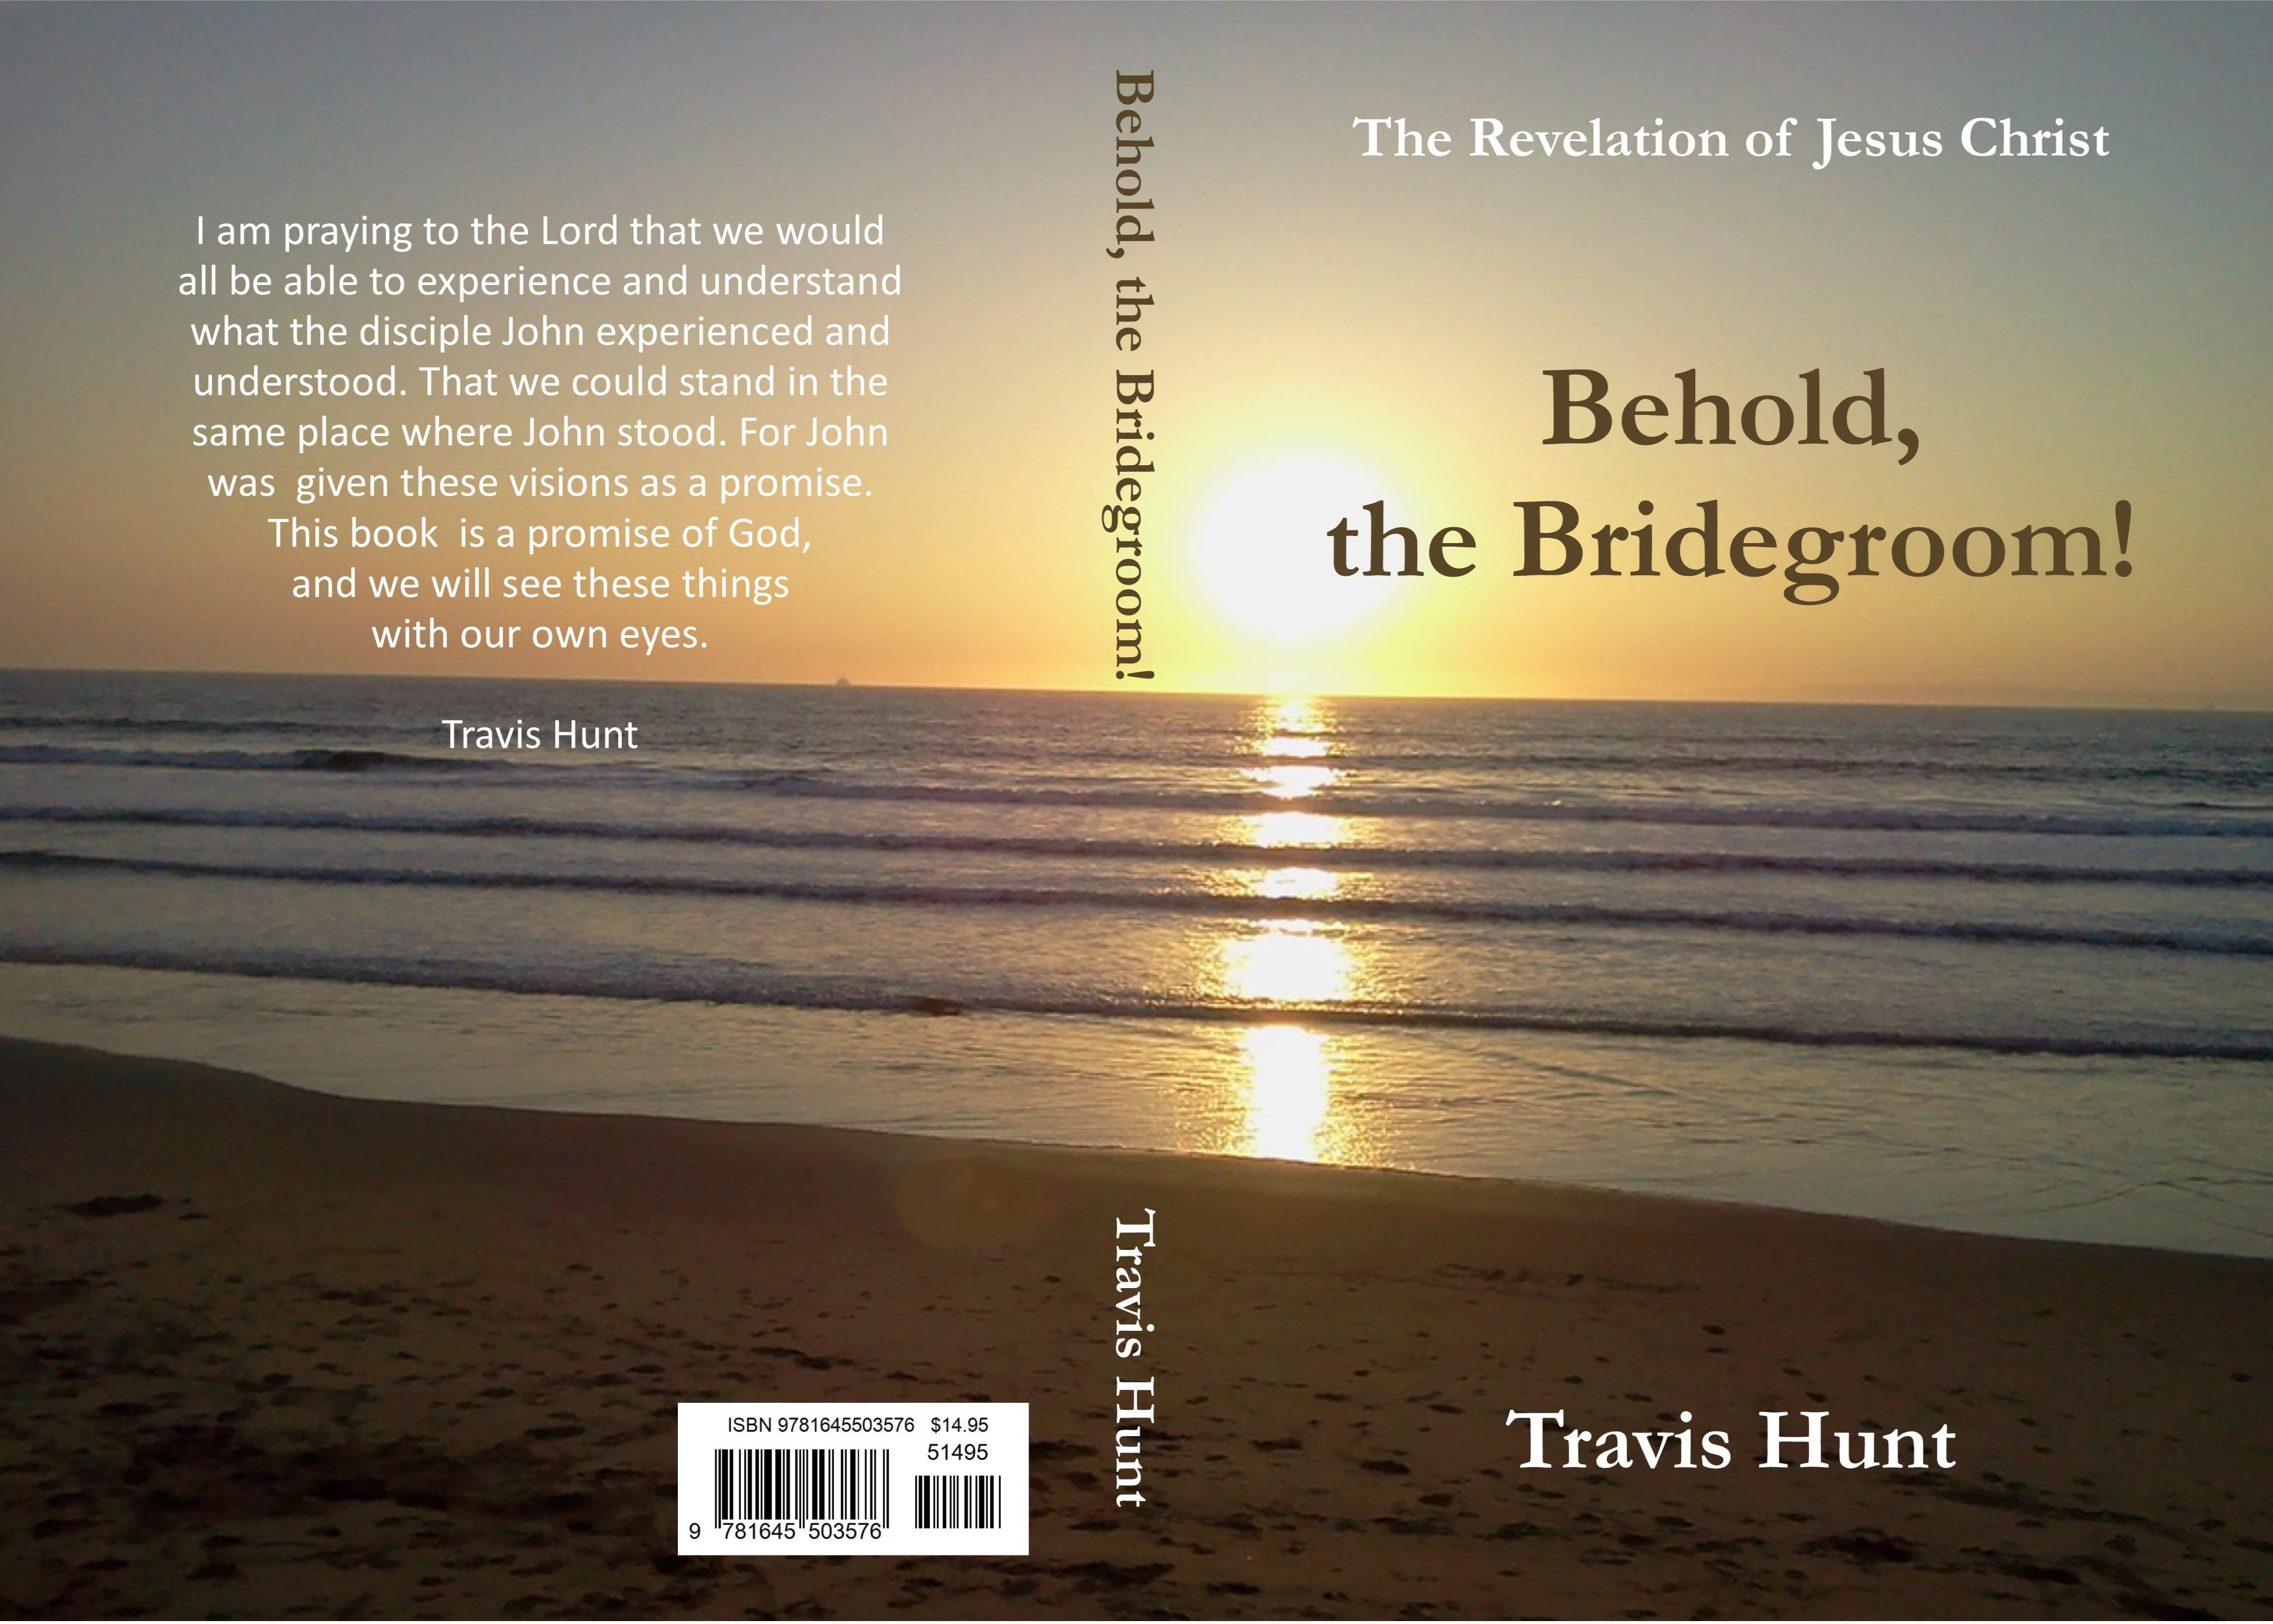 Behold, the Bridegroom! cover image